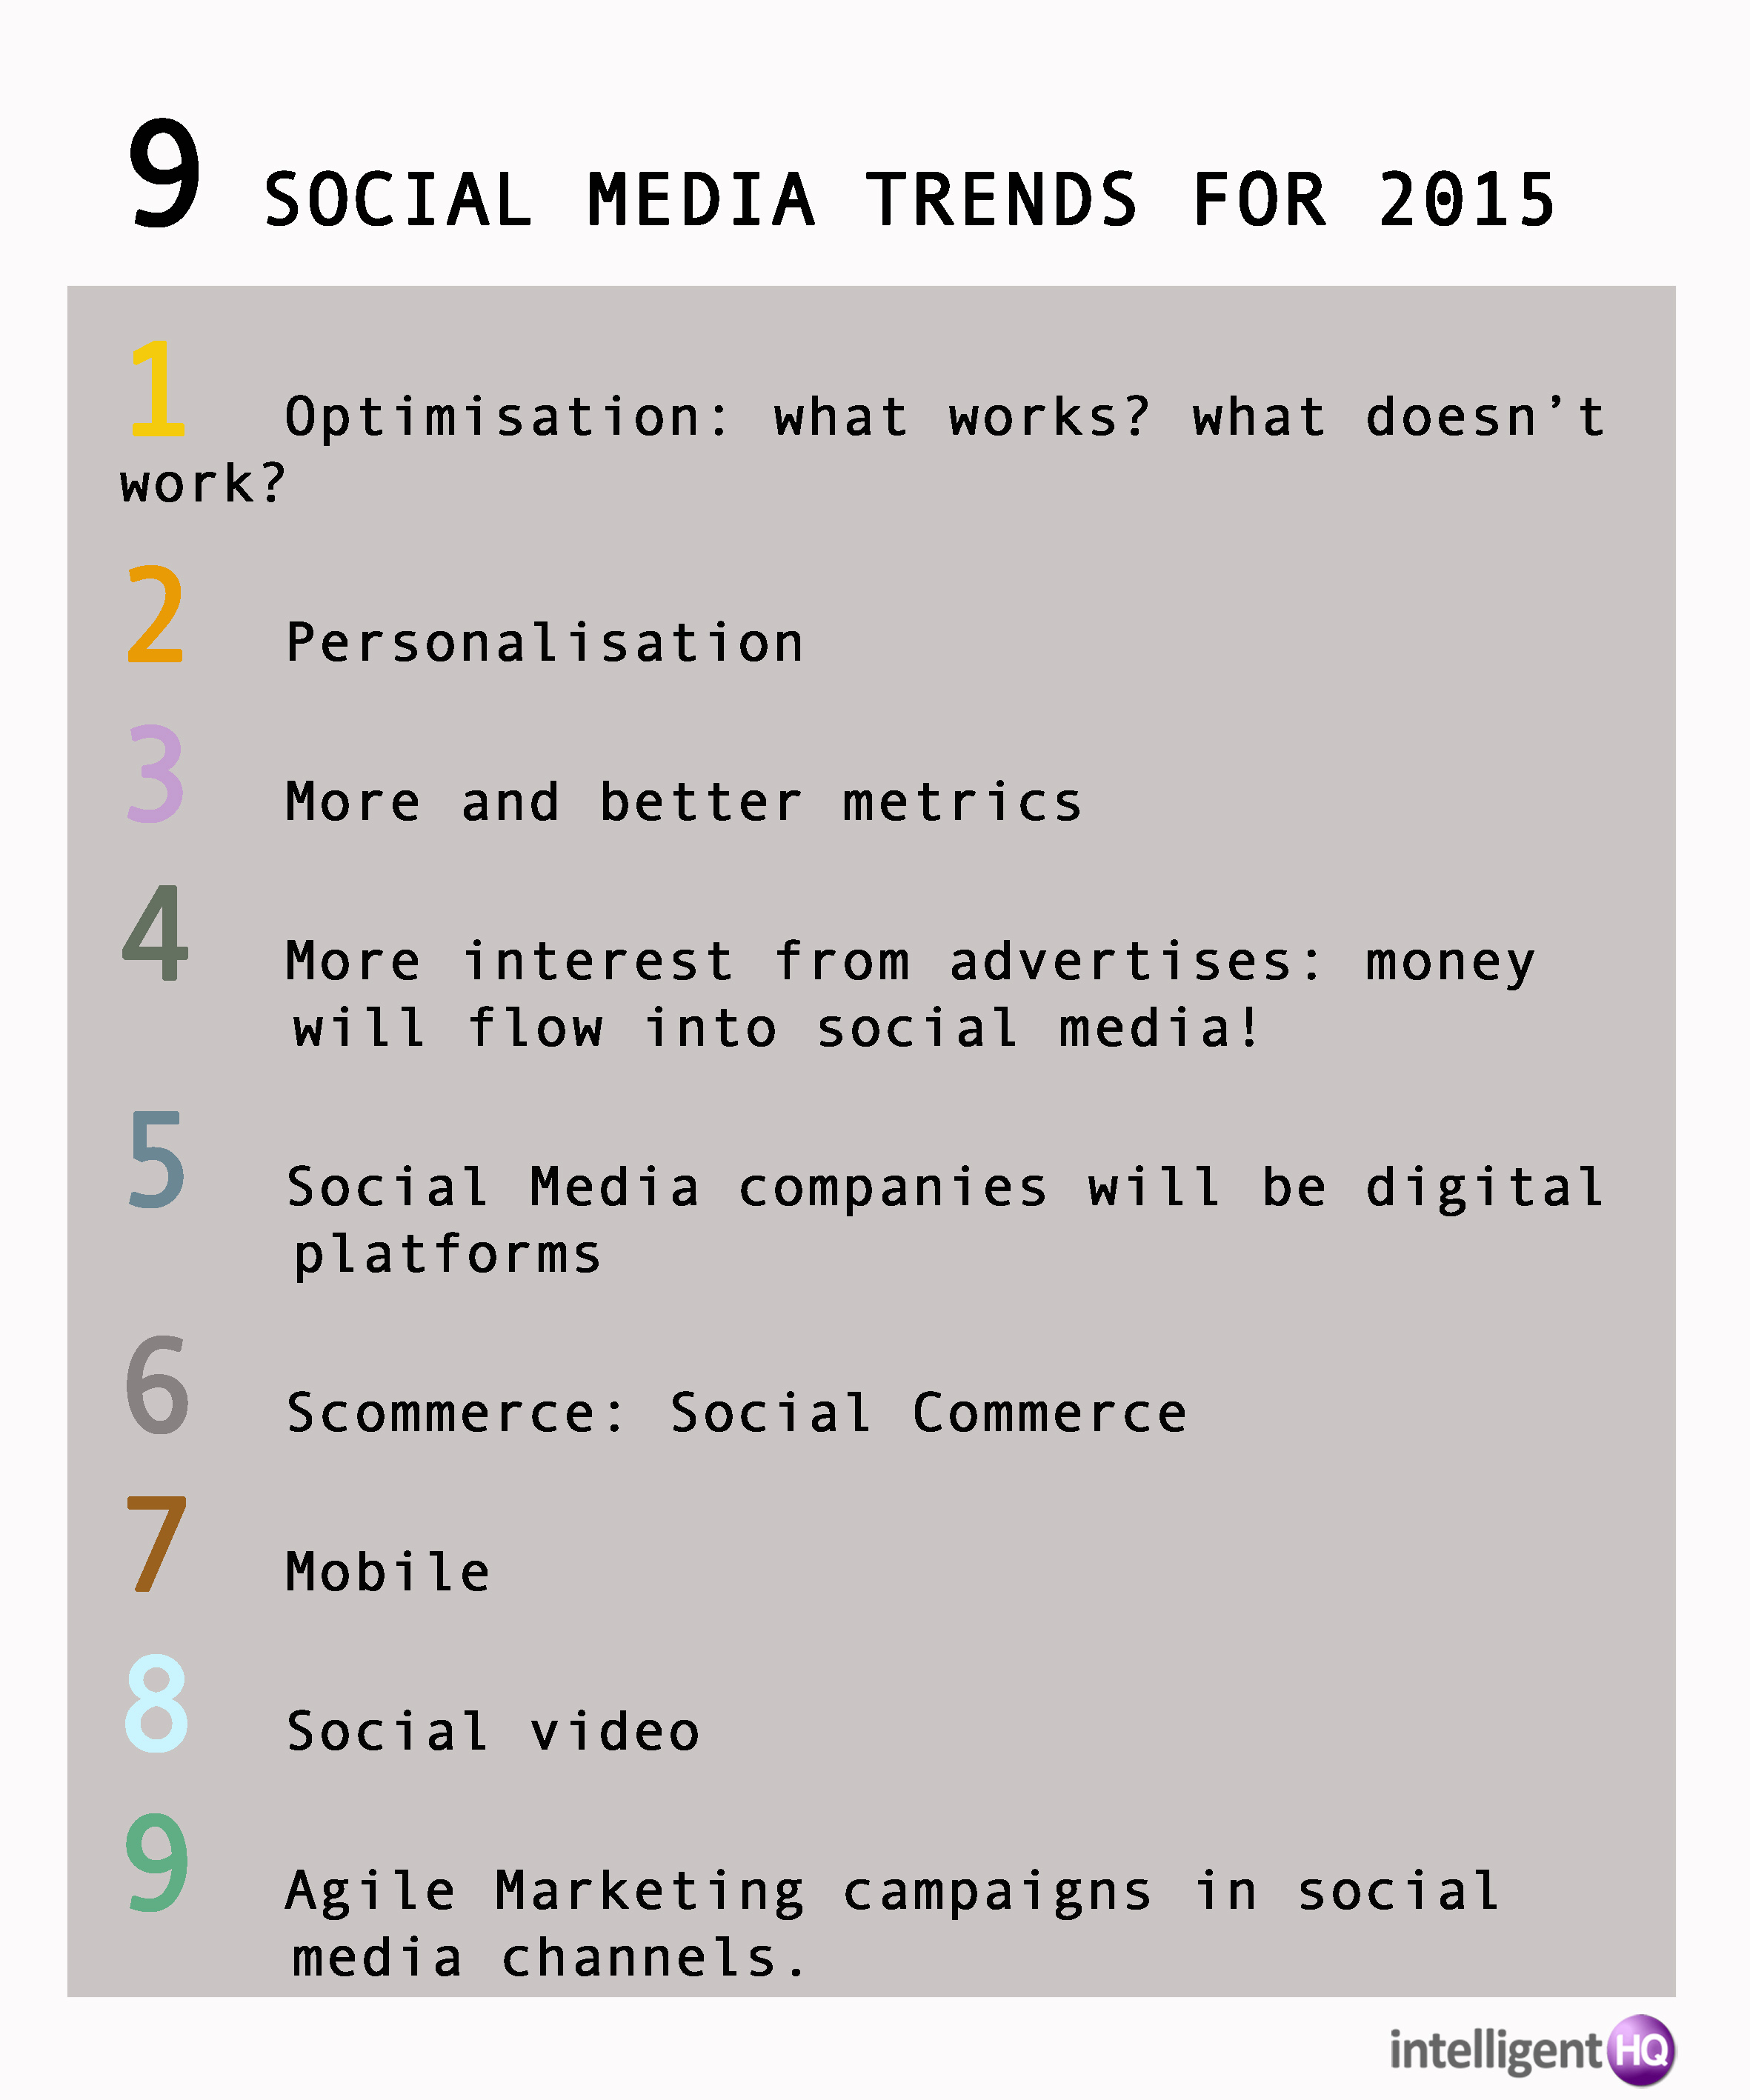 Nine Social Media Trends for 2015 Infographic by Maria Fonseca